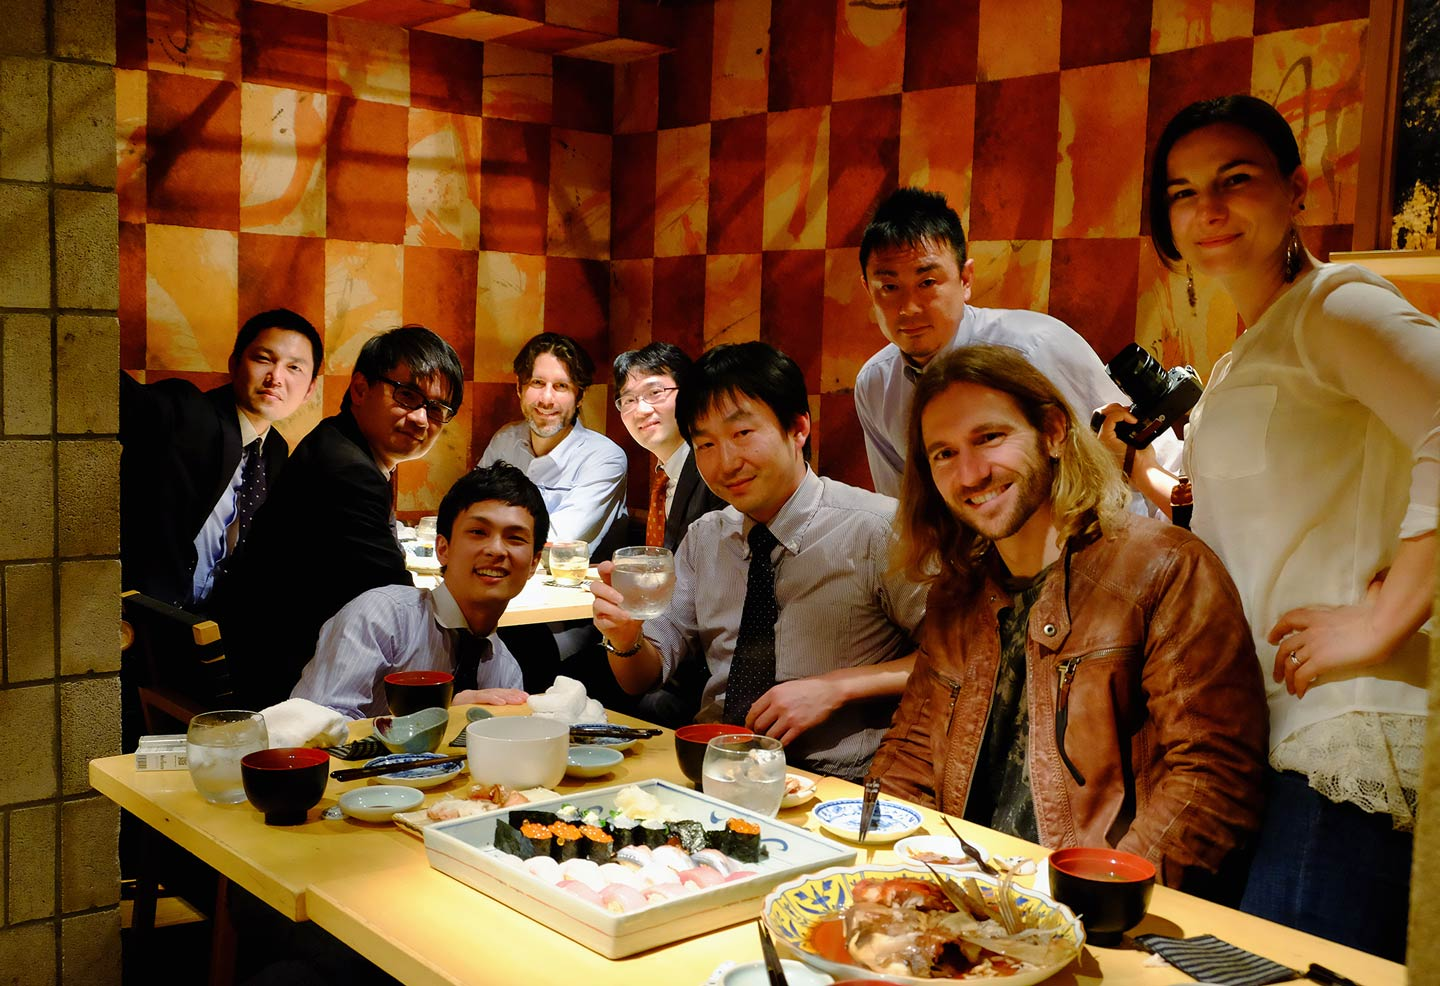 2014-04-10-Dinner-with-the-Fujifilm-Team